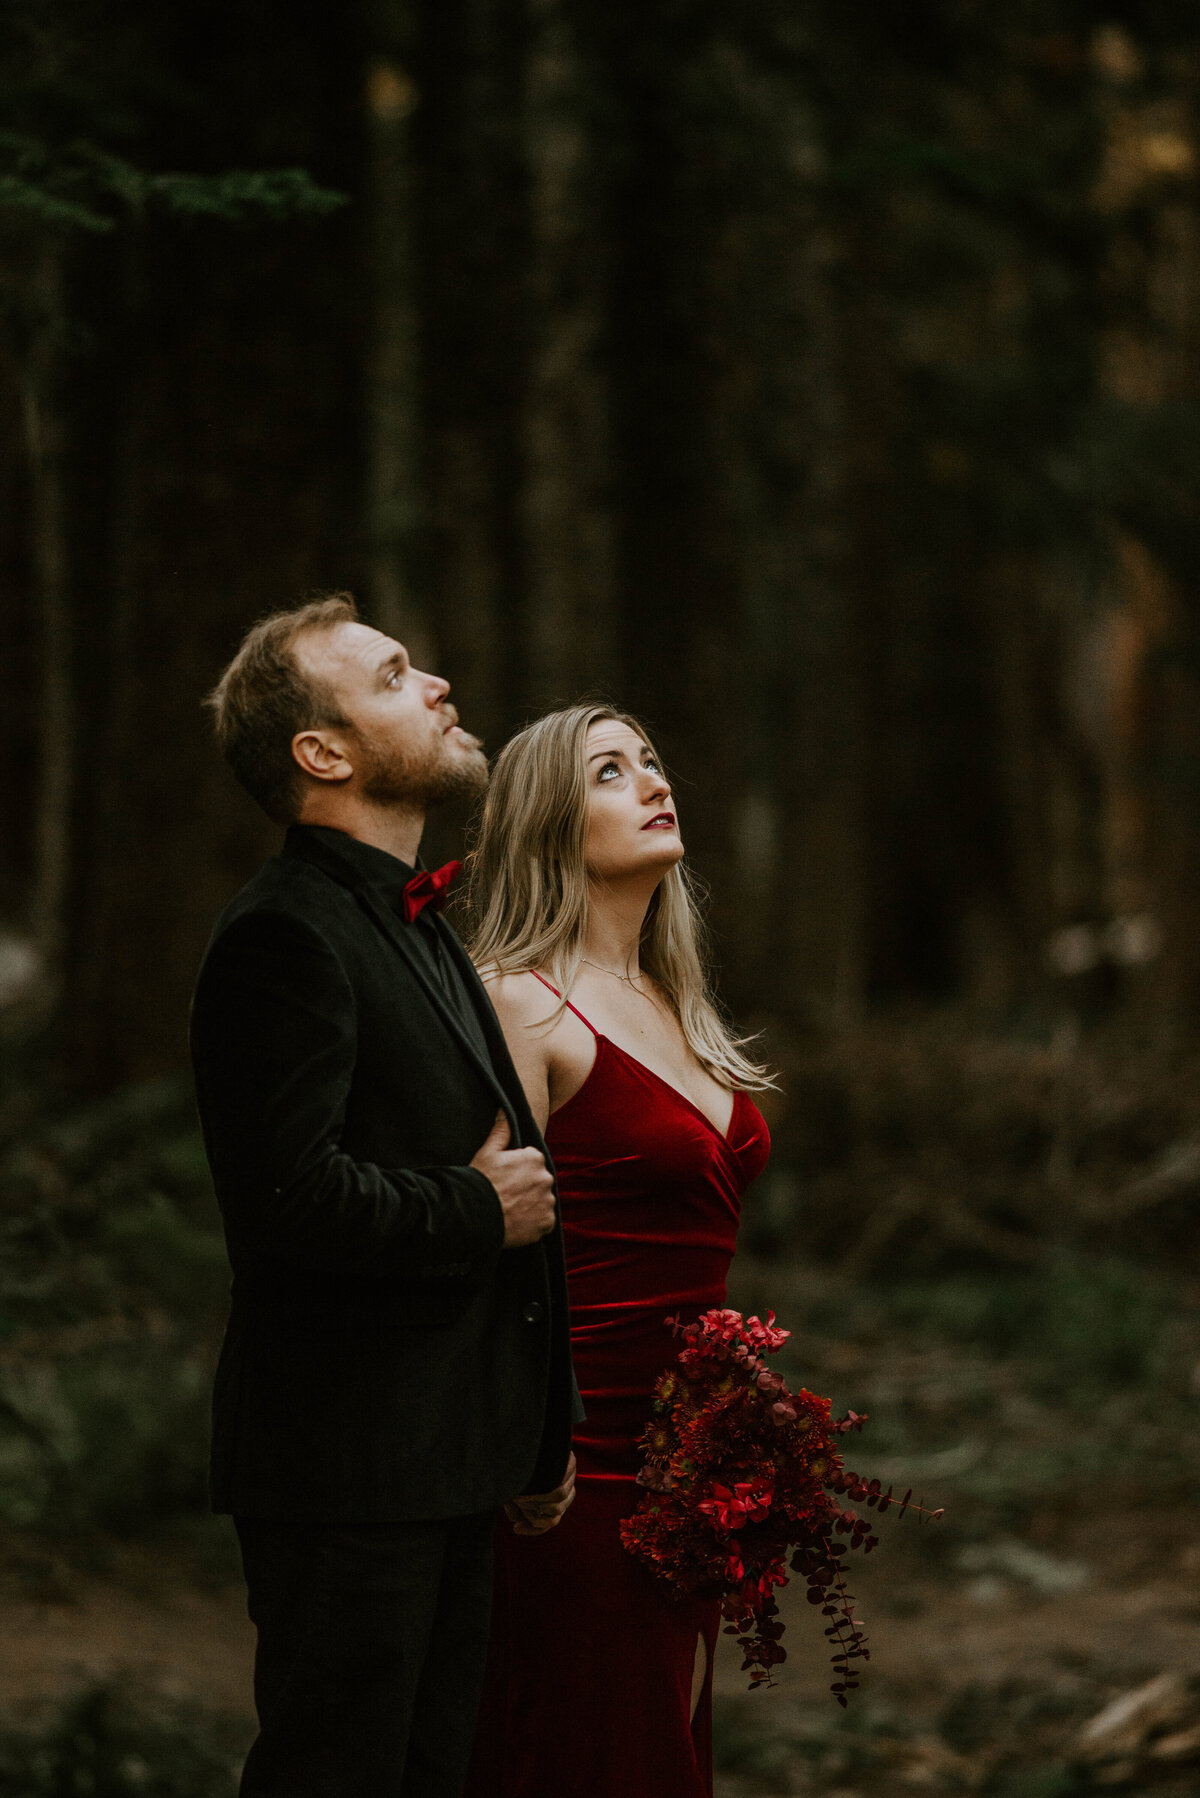 mount-hood-mountain-cabin-woods-elopement-forest-oregon-pnw-wedding-photographer0536